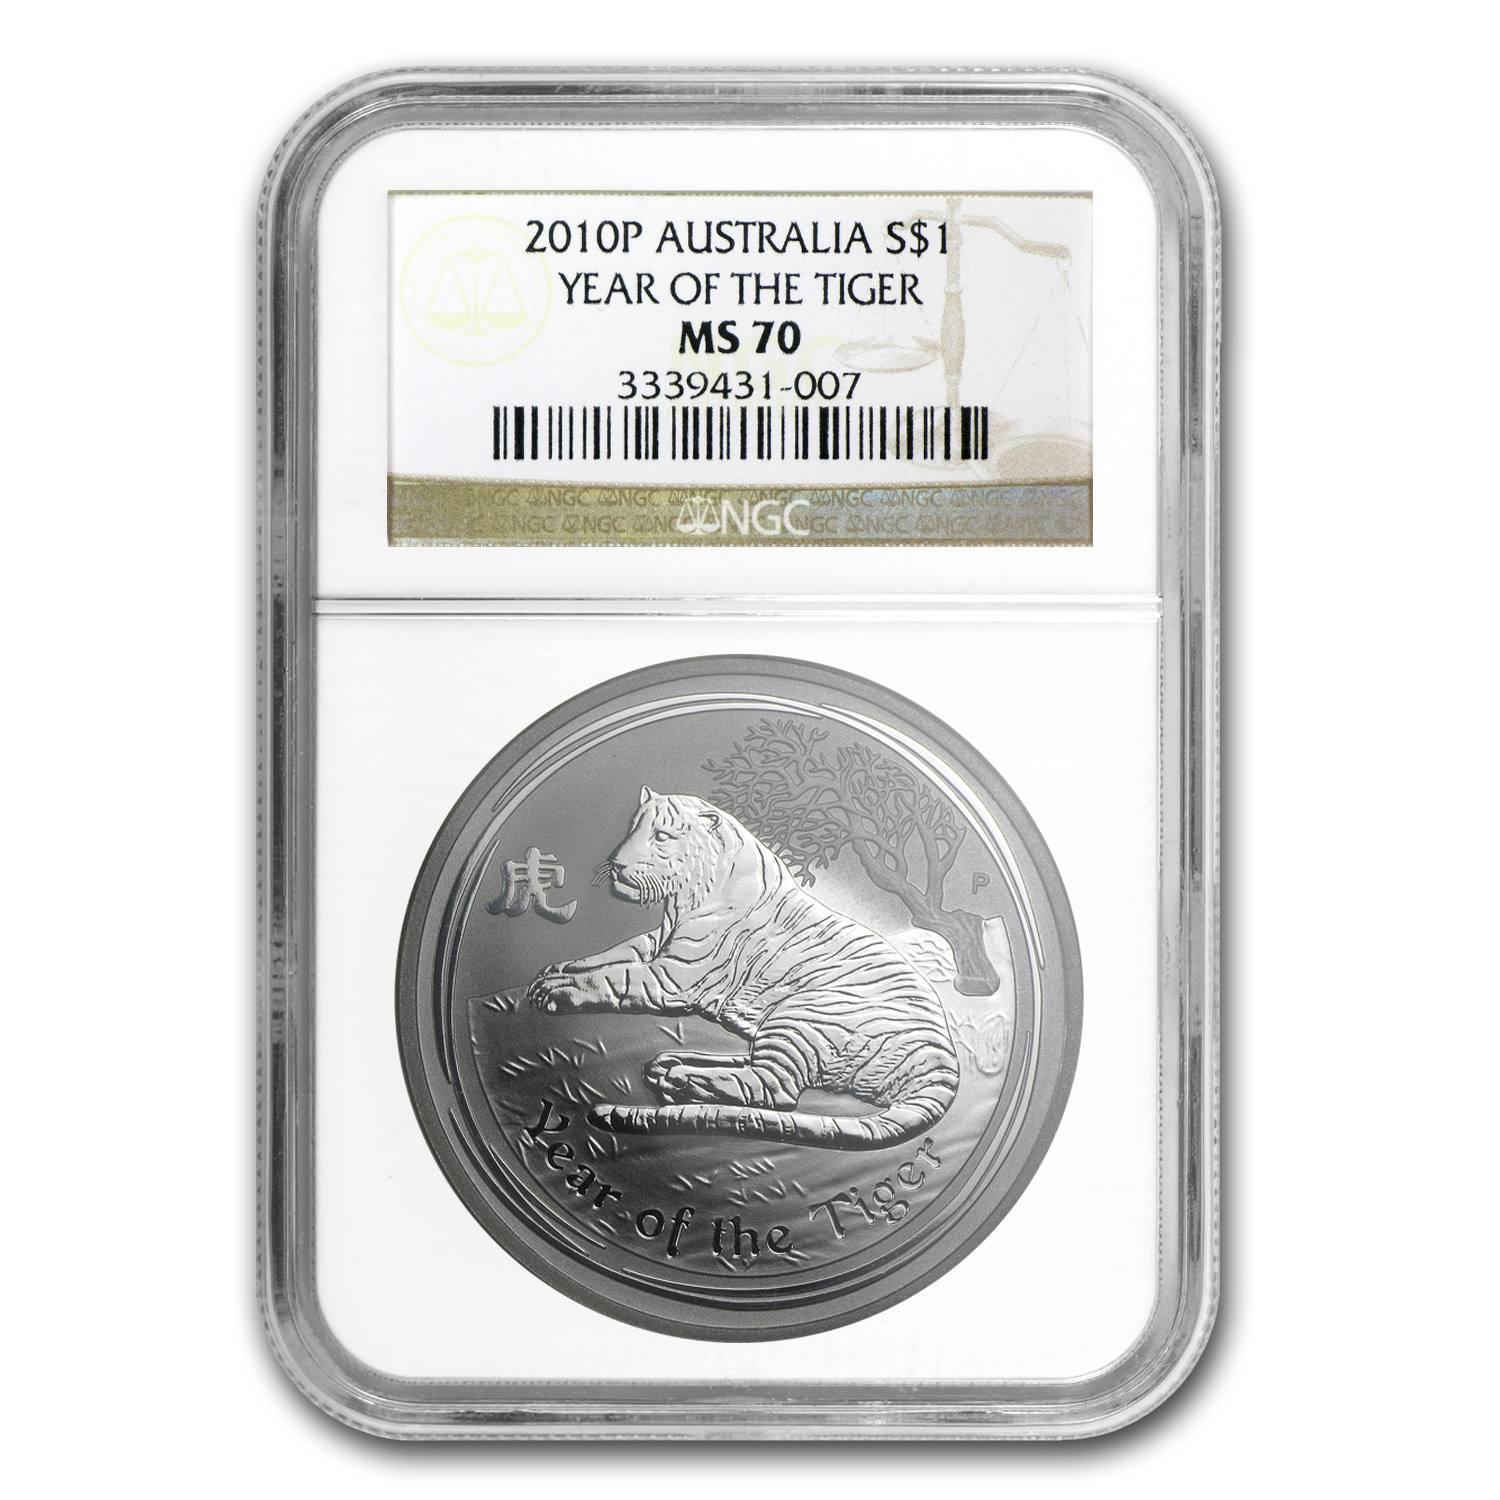 2010 Australia 1 oz Silver Tiger MS-70 NGC (Series II)